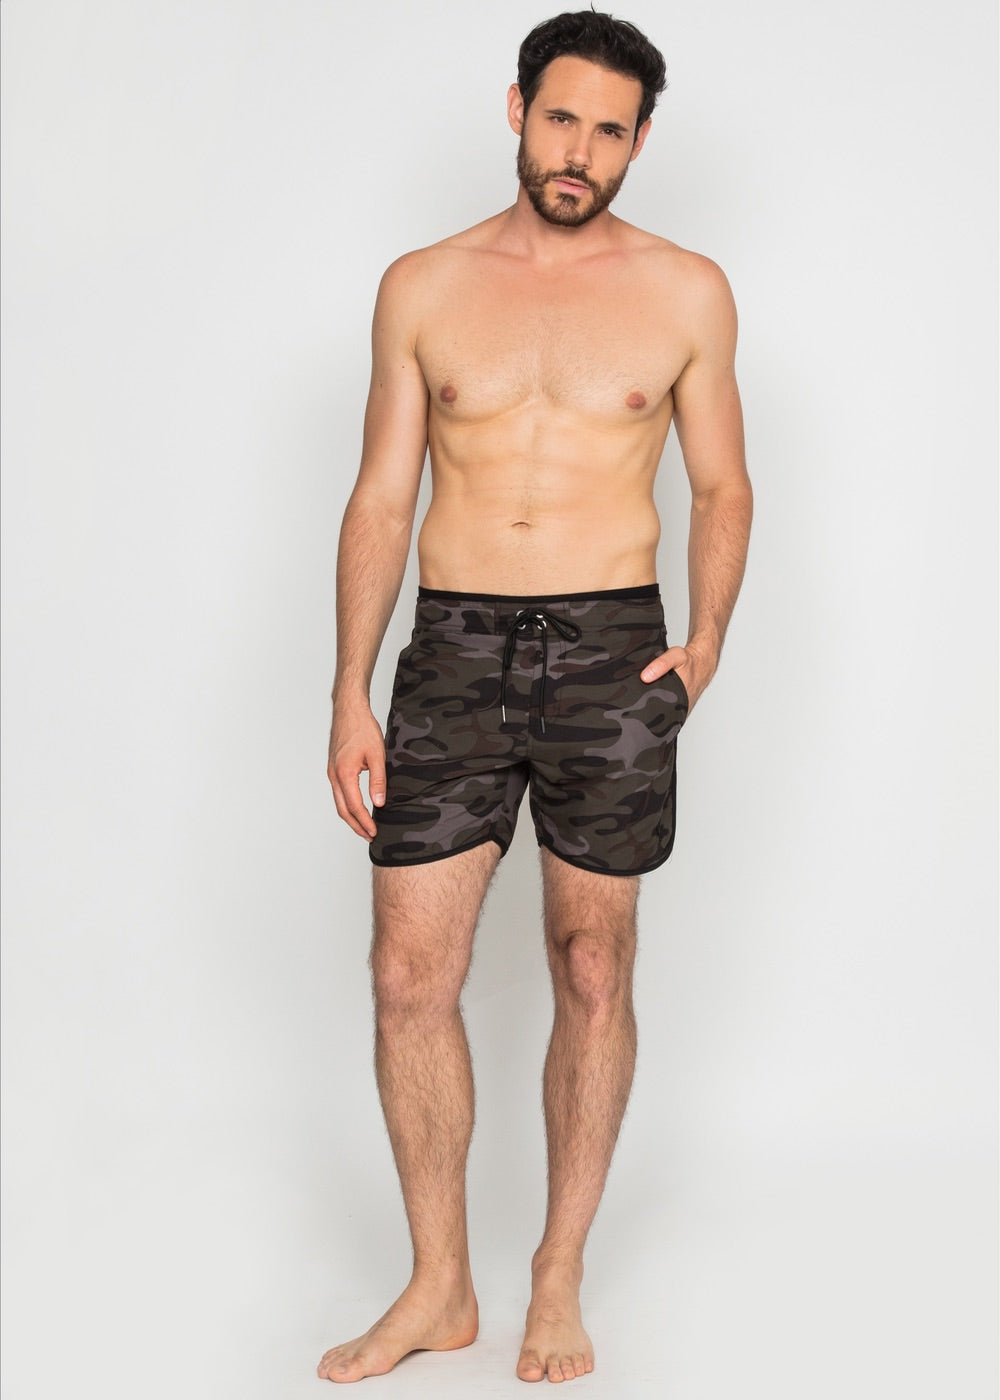 beach shorts the military style